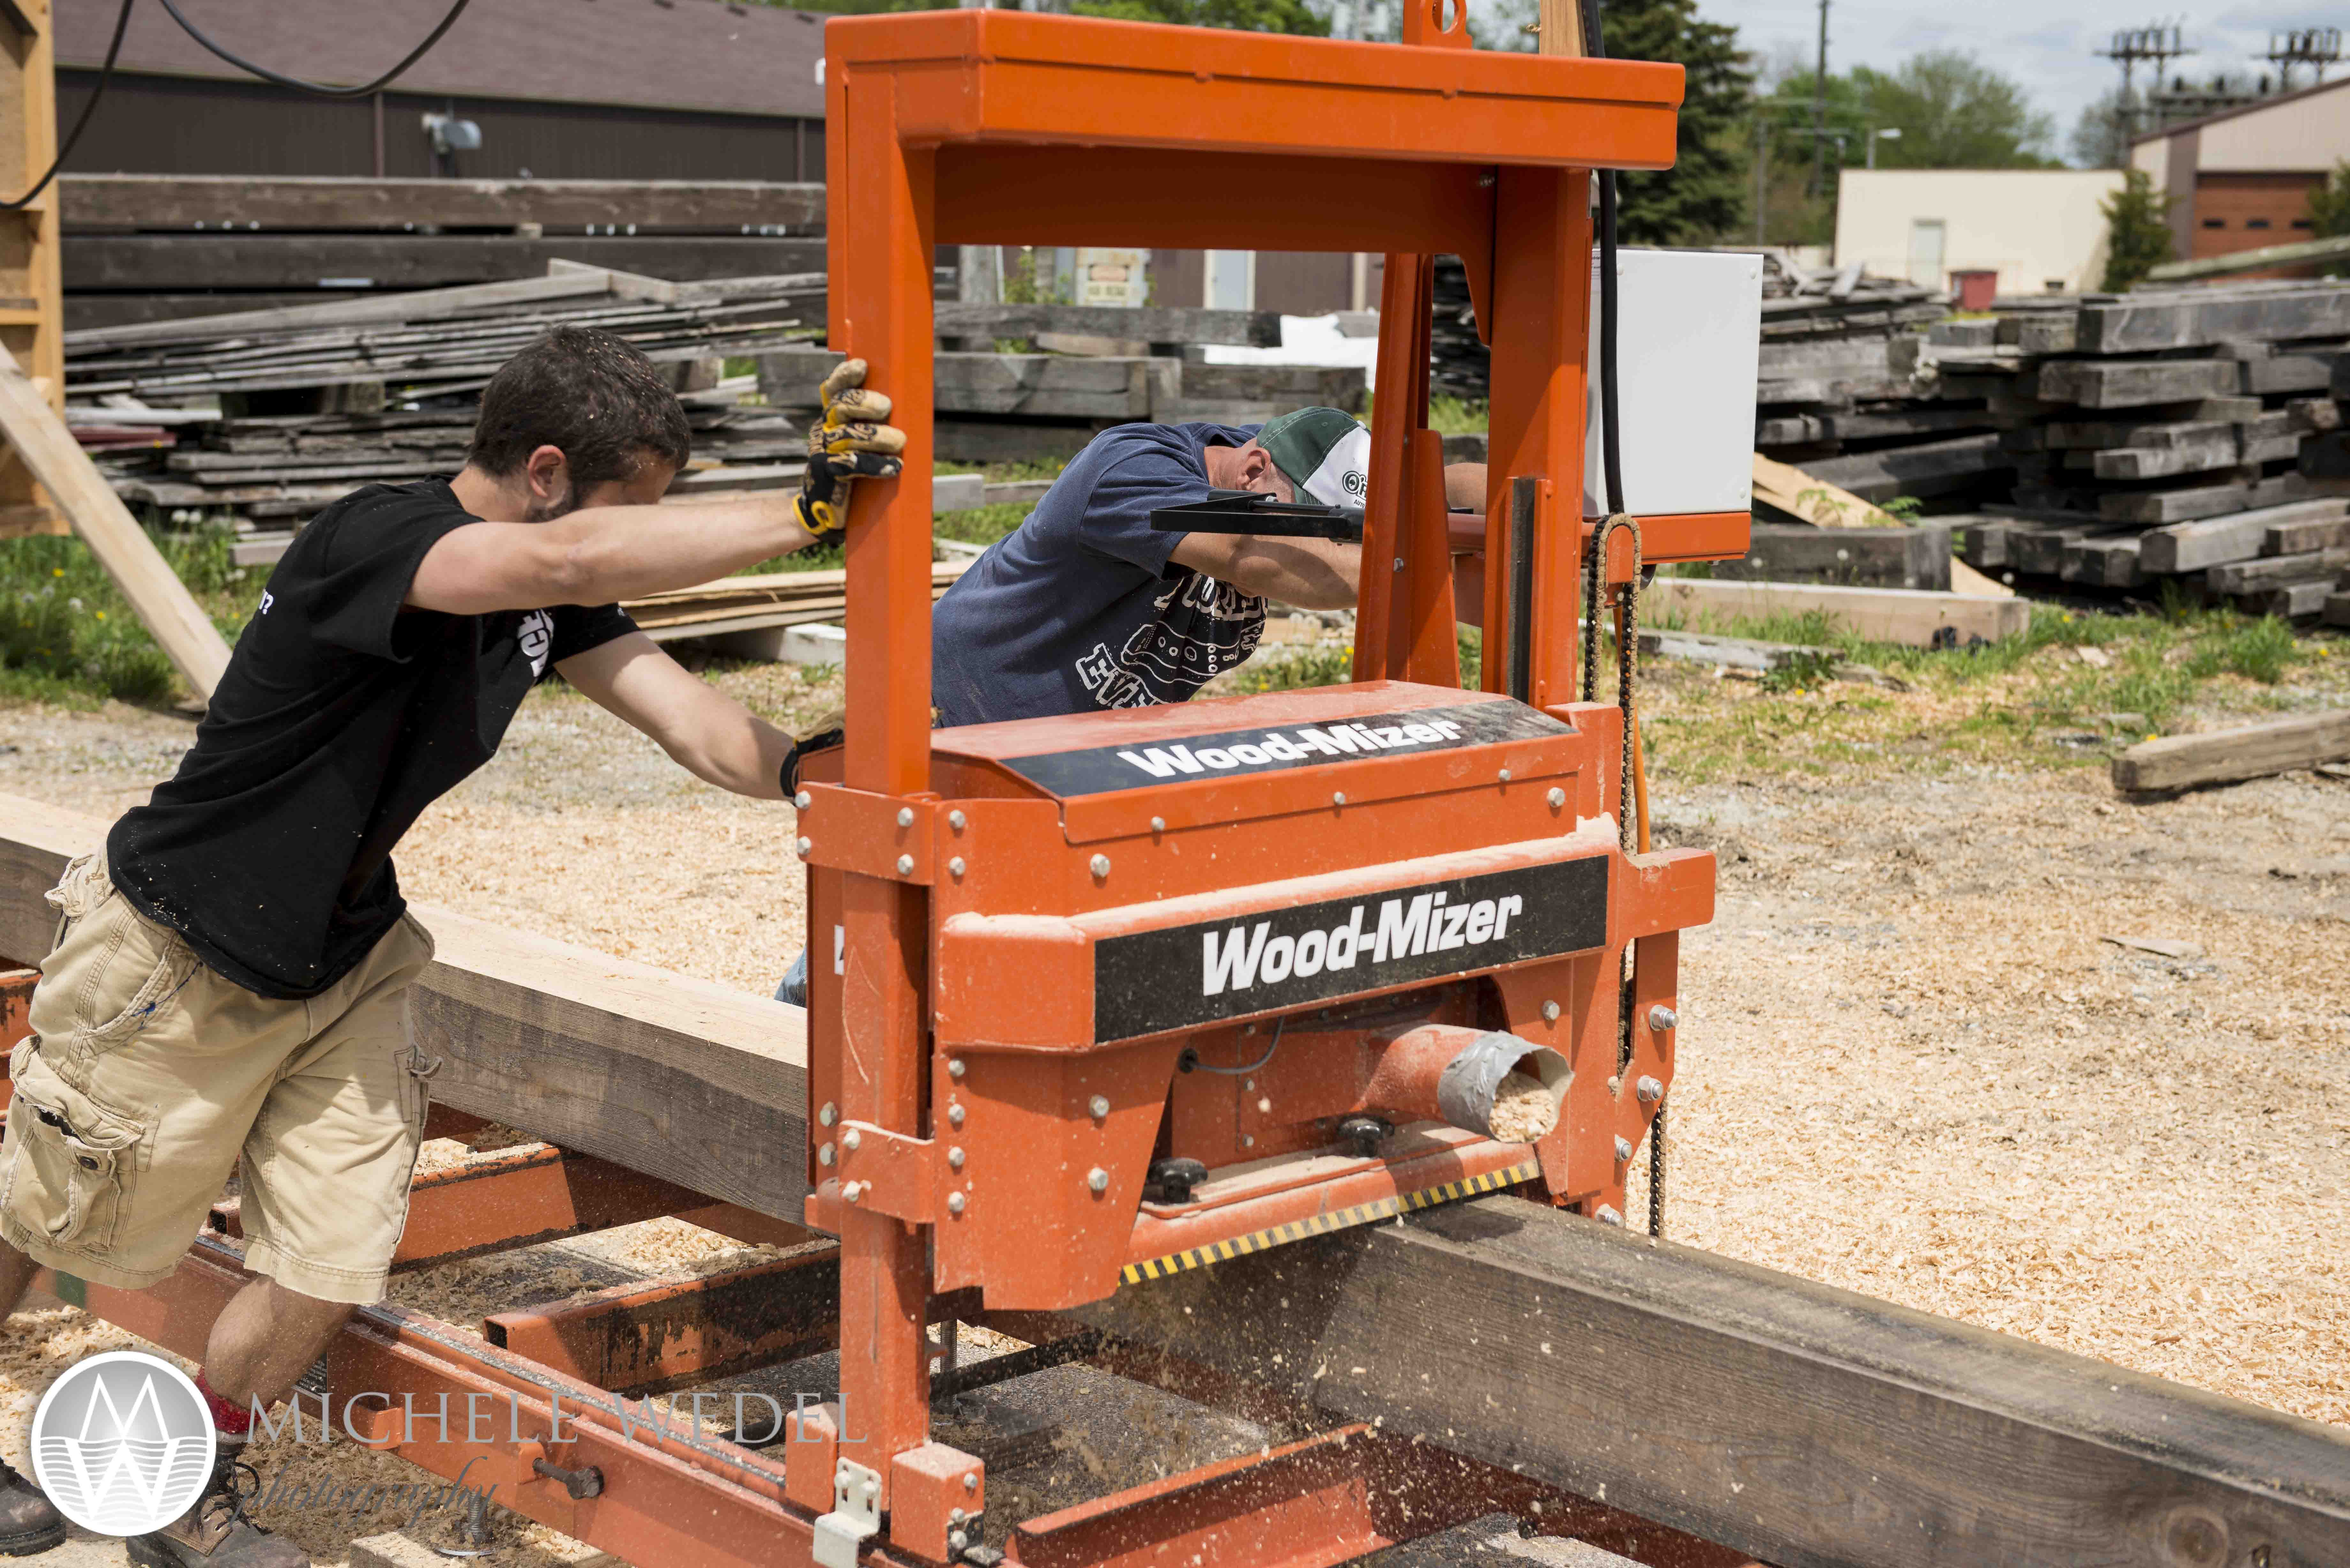 timber-frame-crafting-may-2013-1-of-16